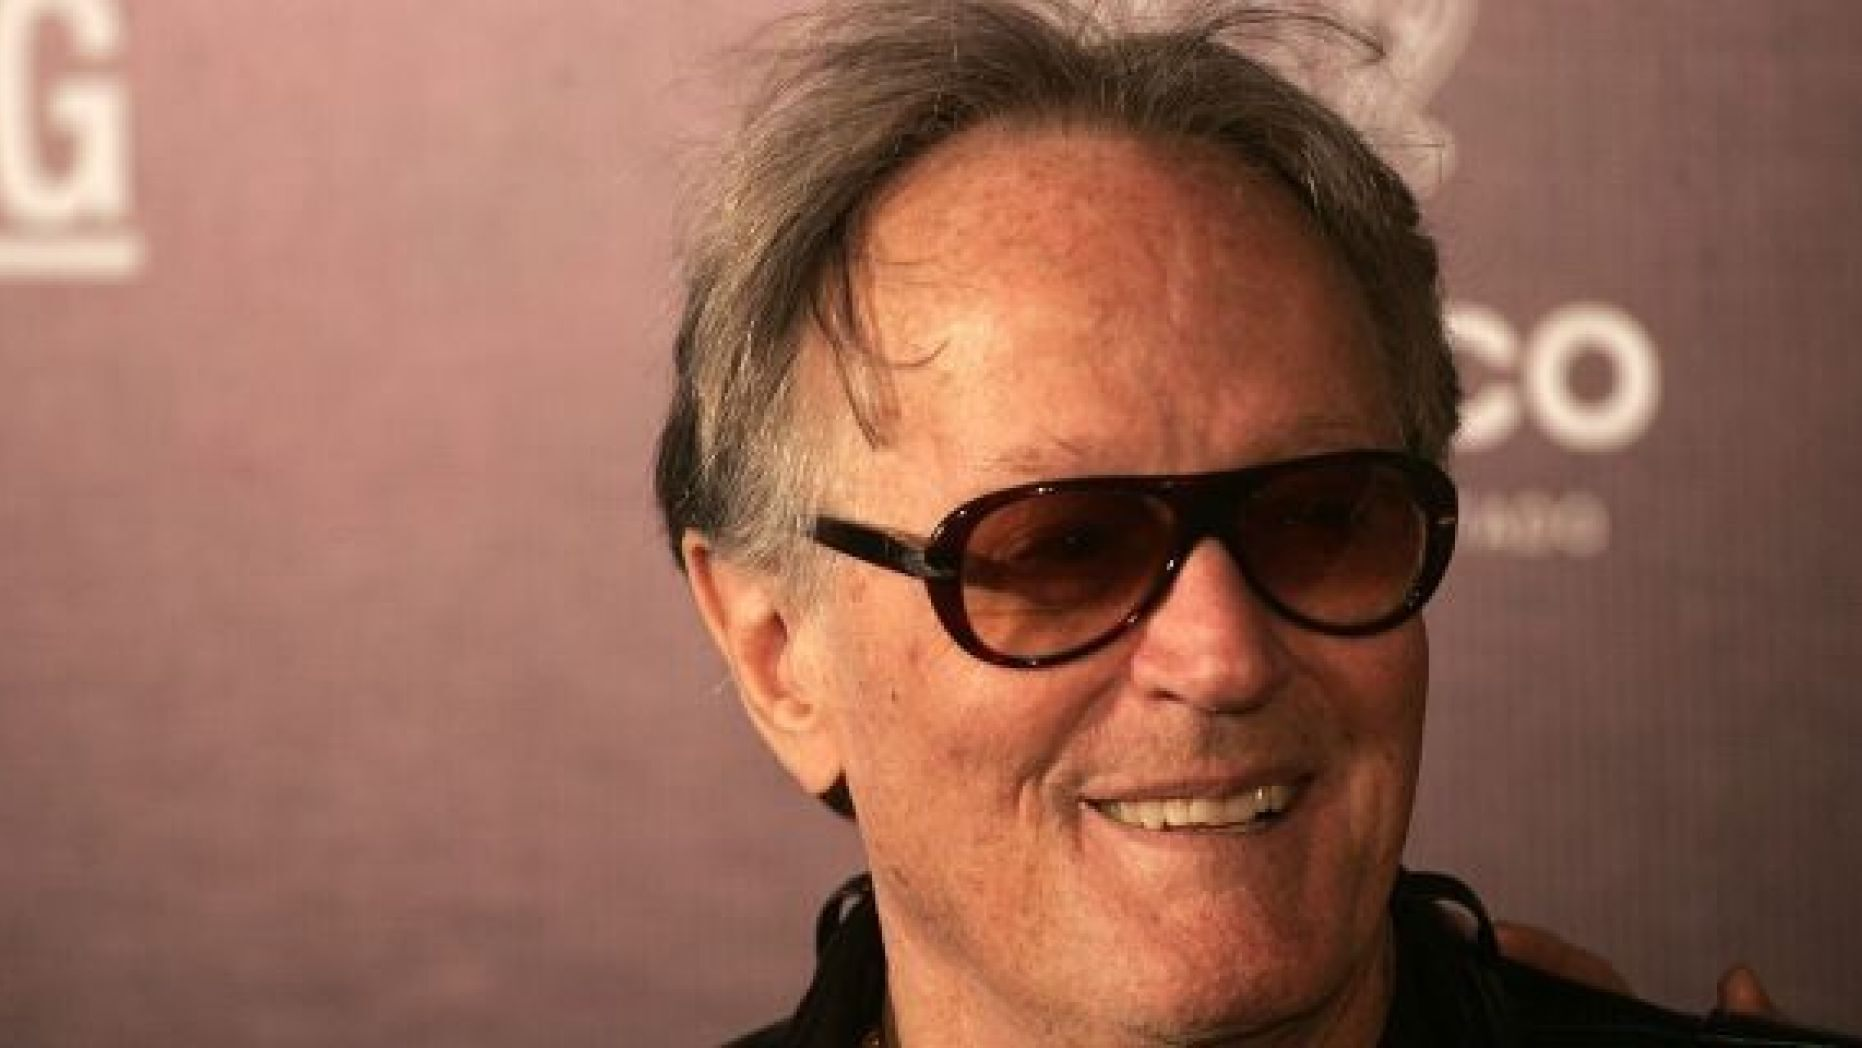 Peter Fonda poses during the red carpet prior to the opening ceremony of the Guadalajara International Film Festival 2019 at Auditorio Telmex on March, 8, 2019 in Guadalajara, Mexico. (Photo by Leonardo Alvarez Hernandez/Getty Images)